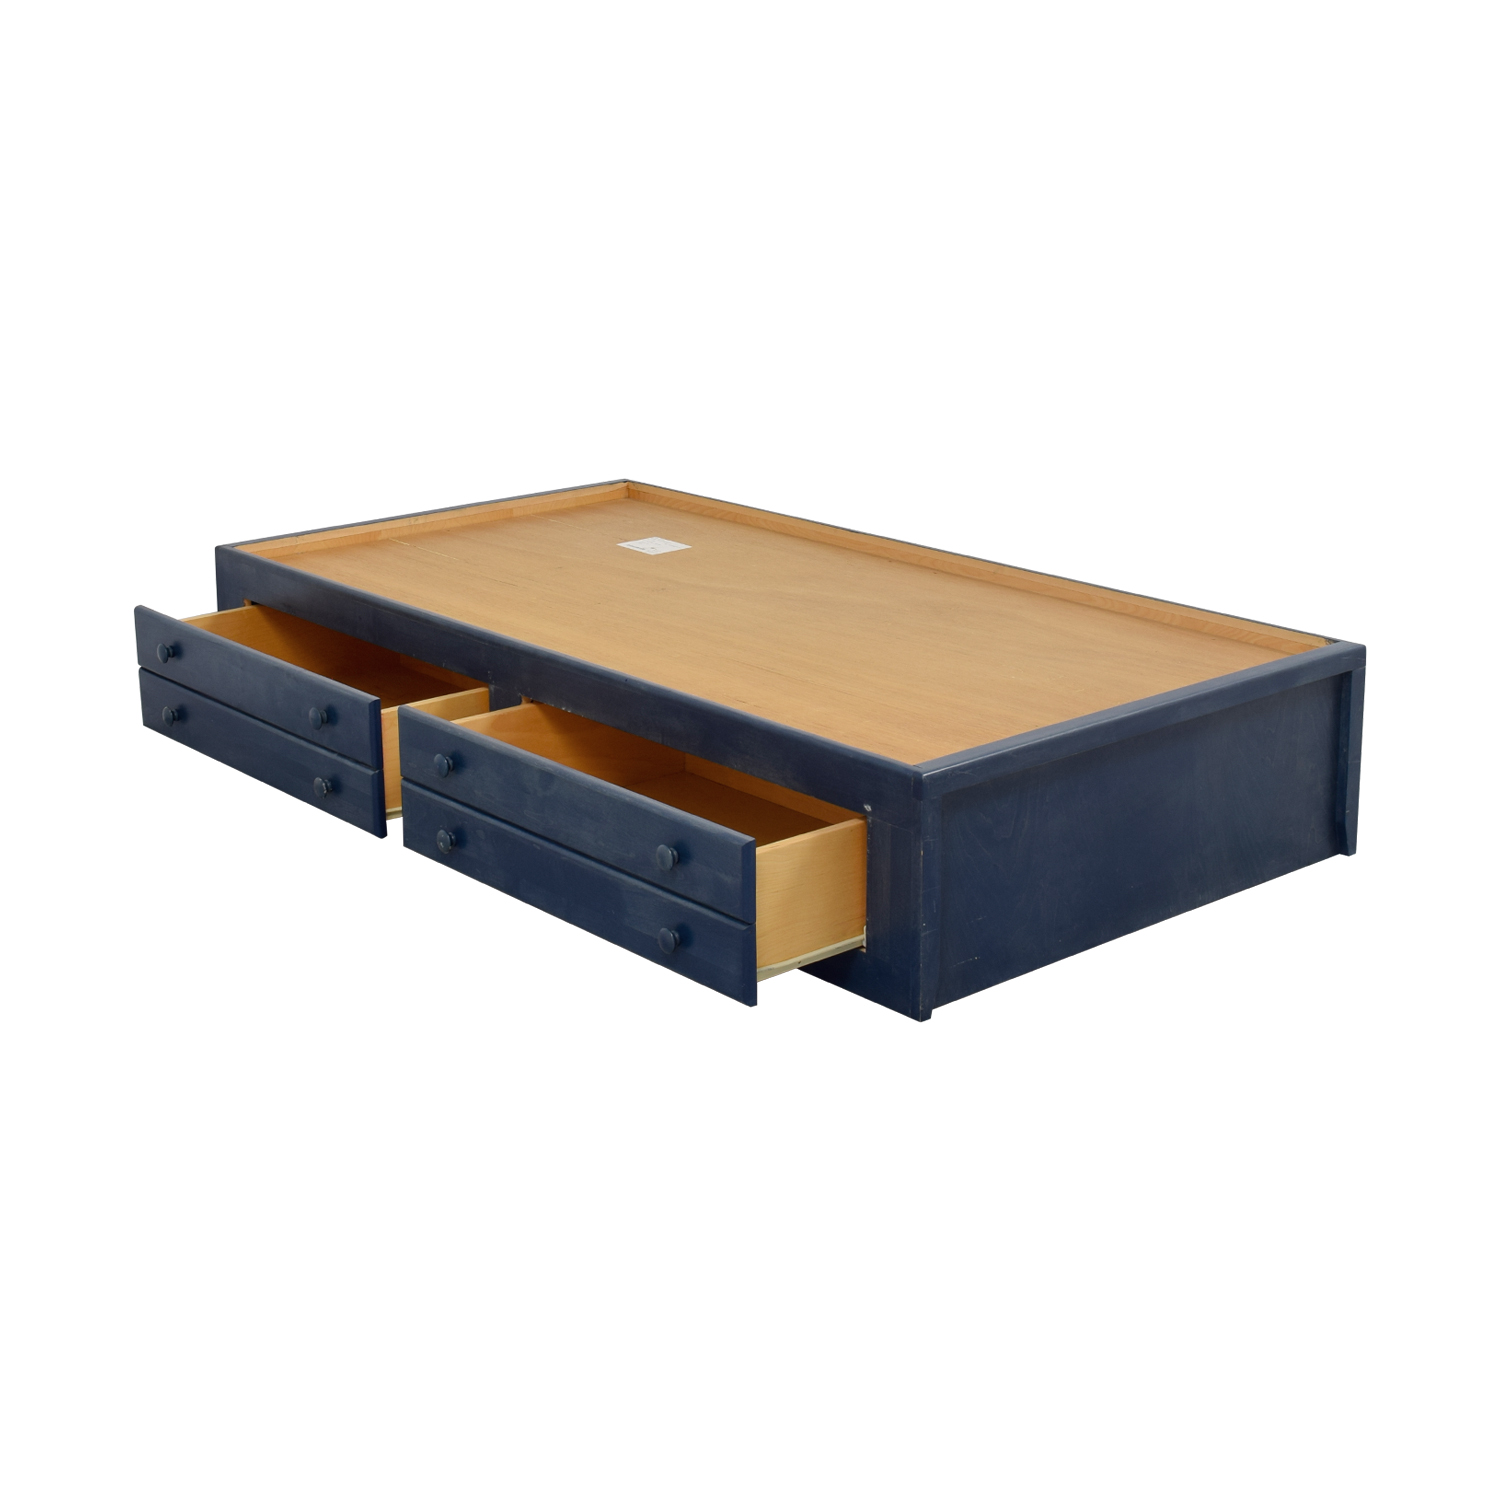 Twin Bed Frame With Storage 77% Off - Pottery Barn Pottery Barn Slate Blue Twin